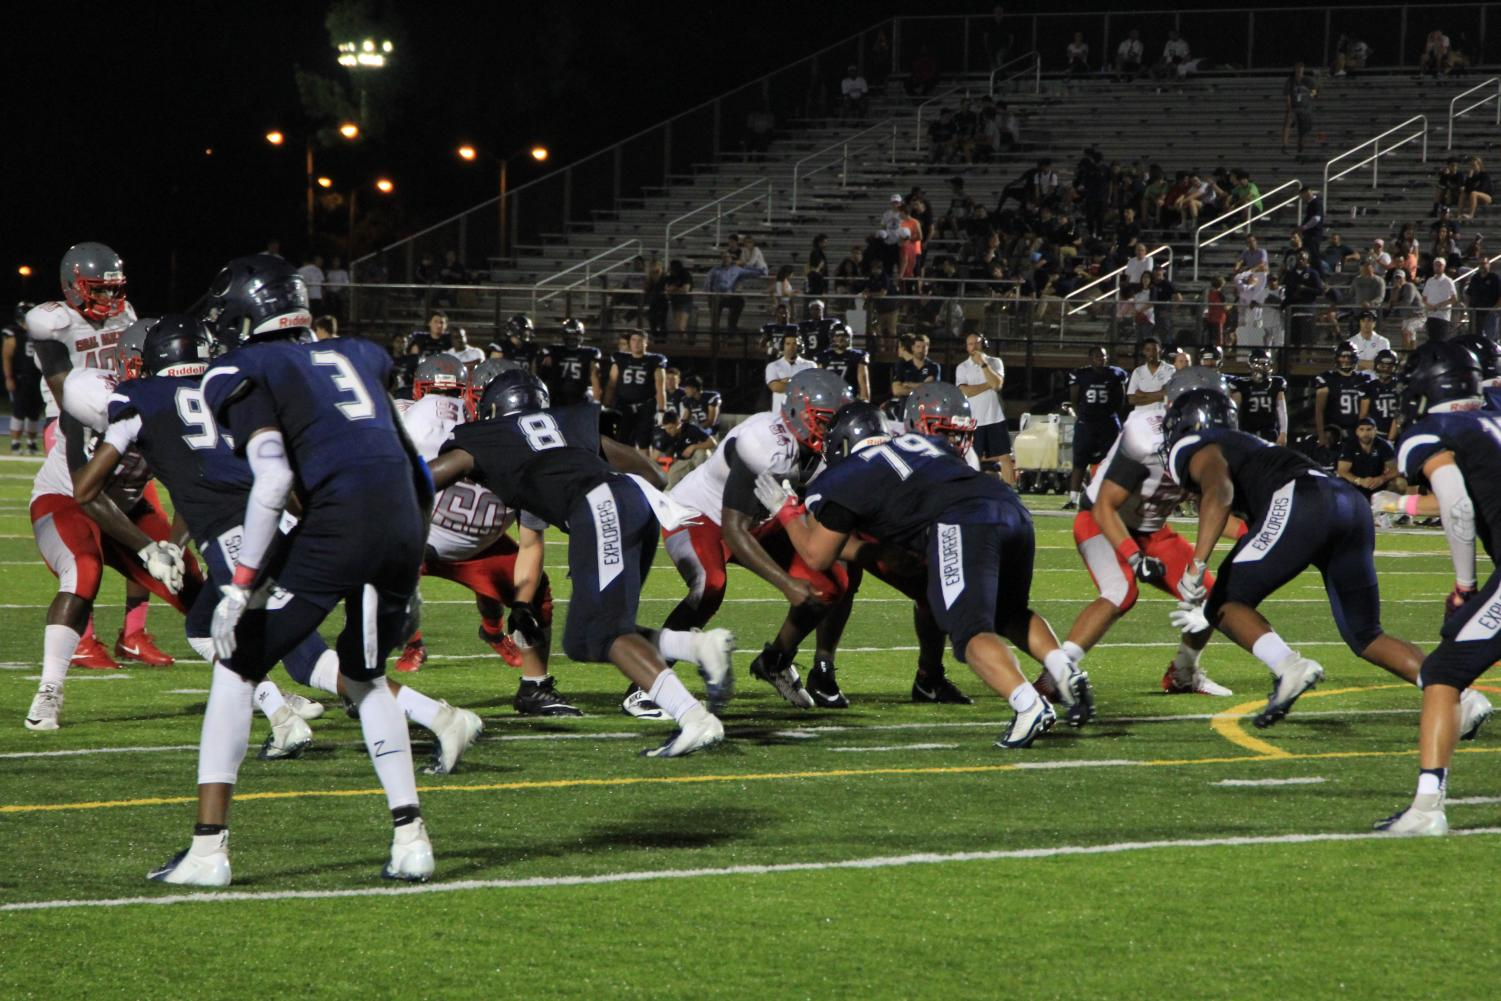 Both+Gables+and+Columbus+players+clash+heads+during+this+intense+play.